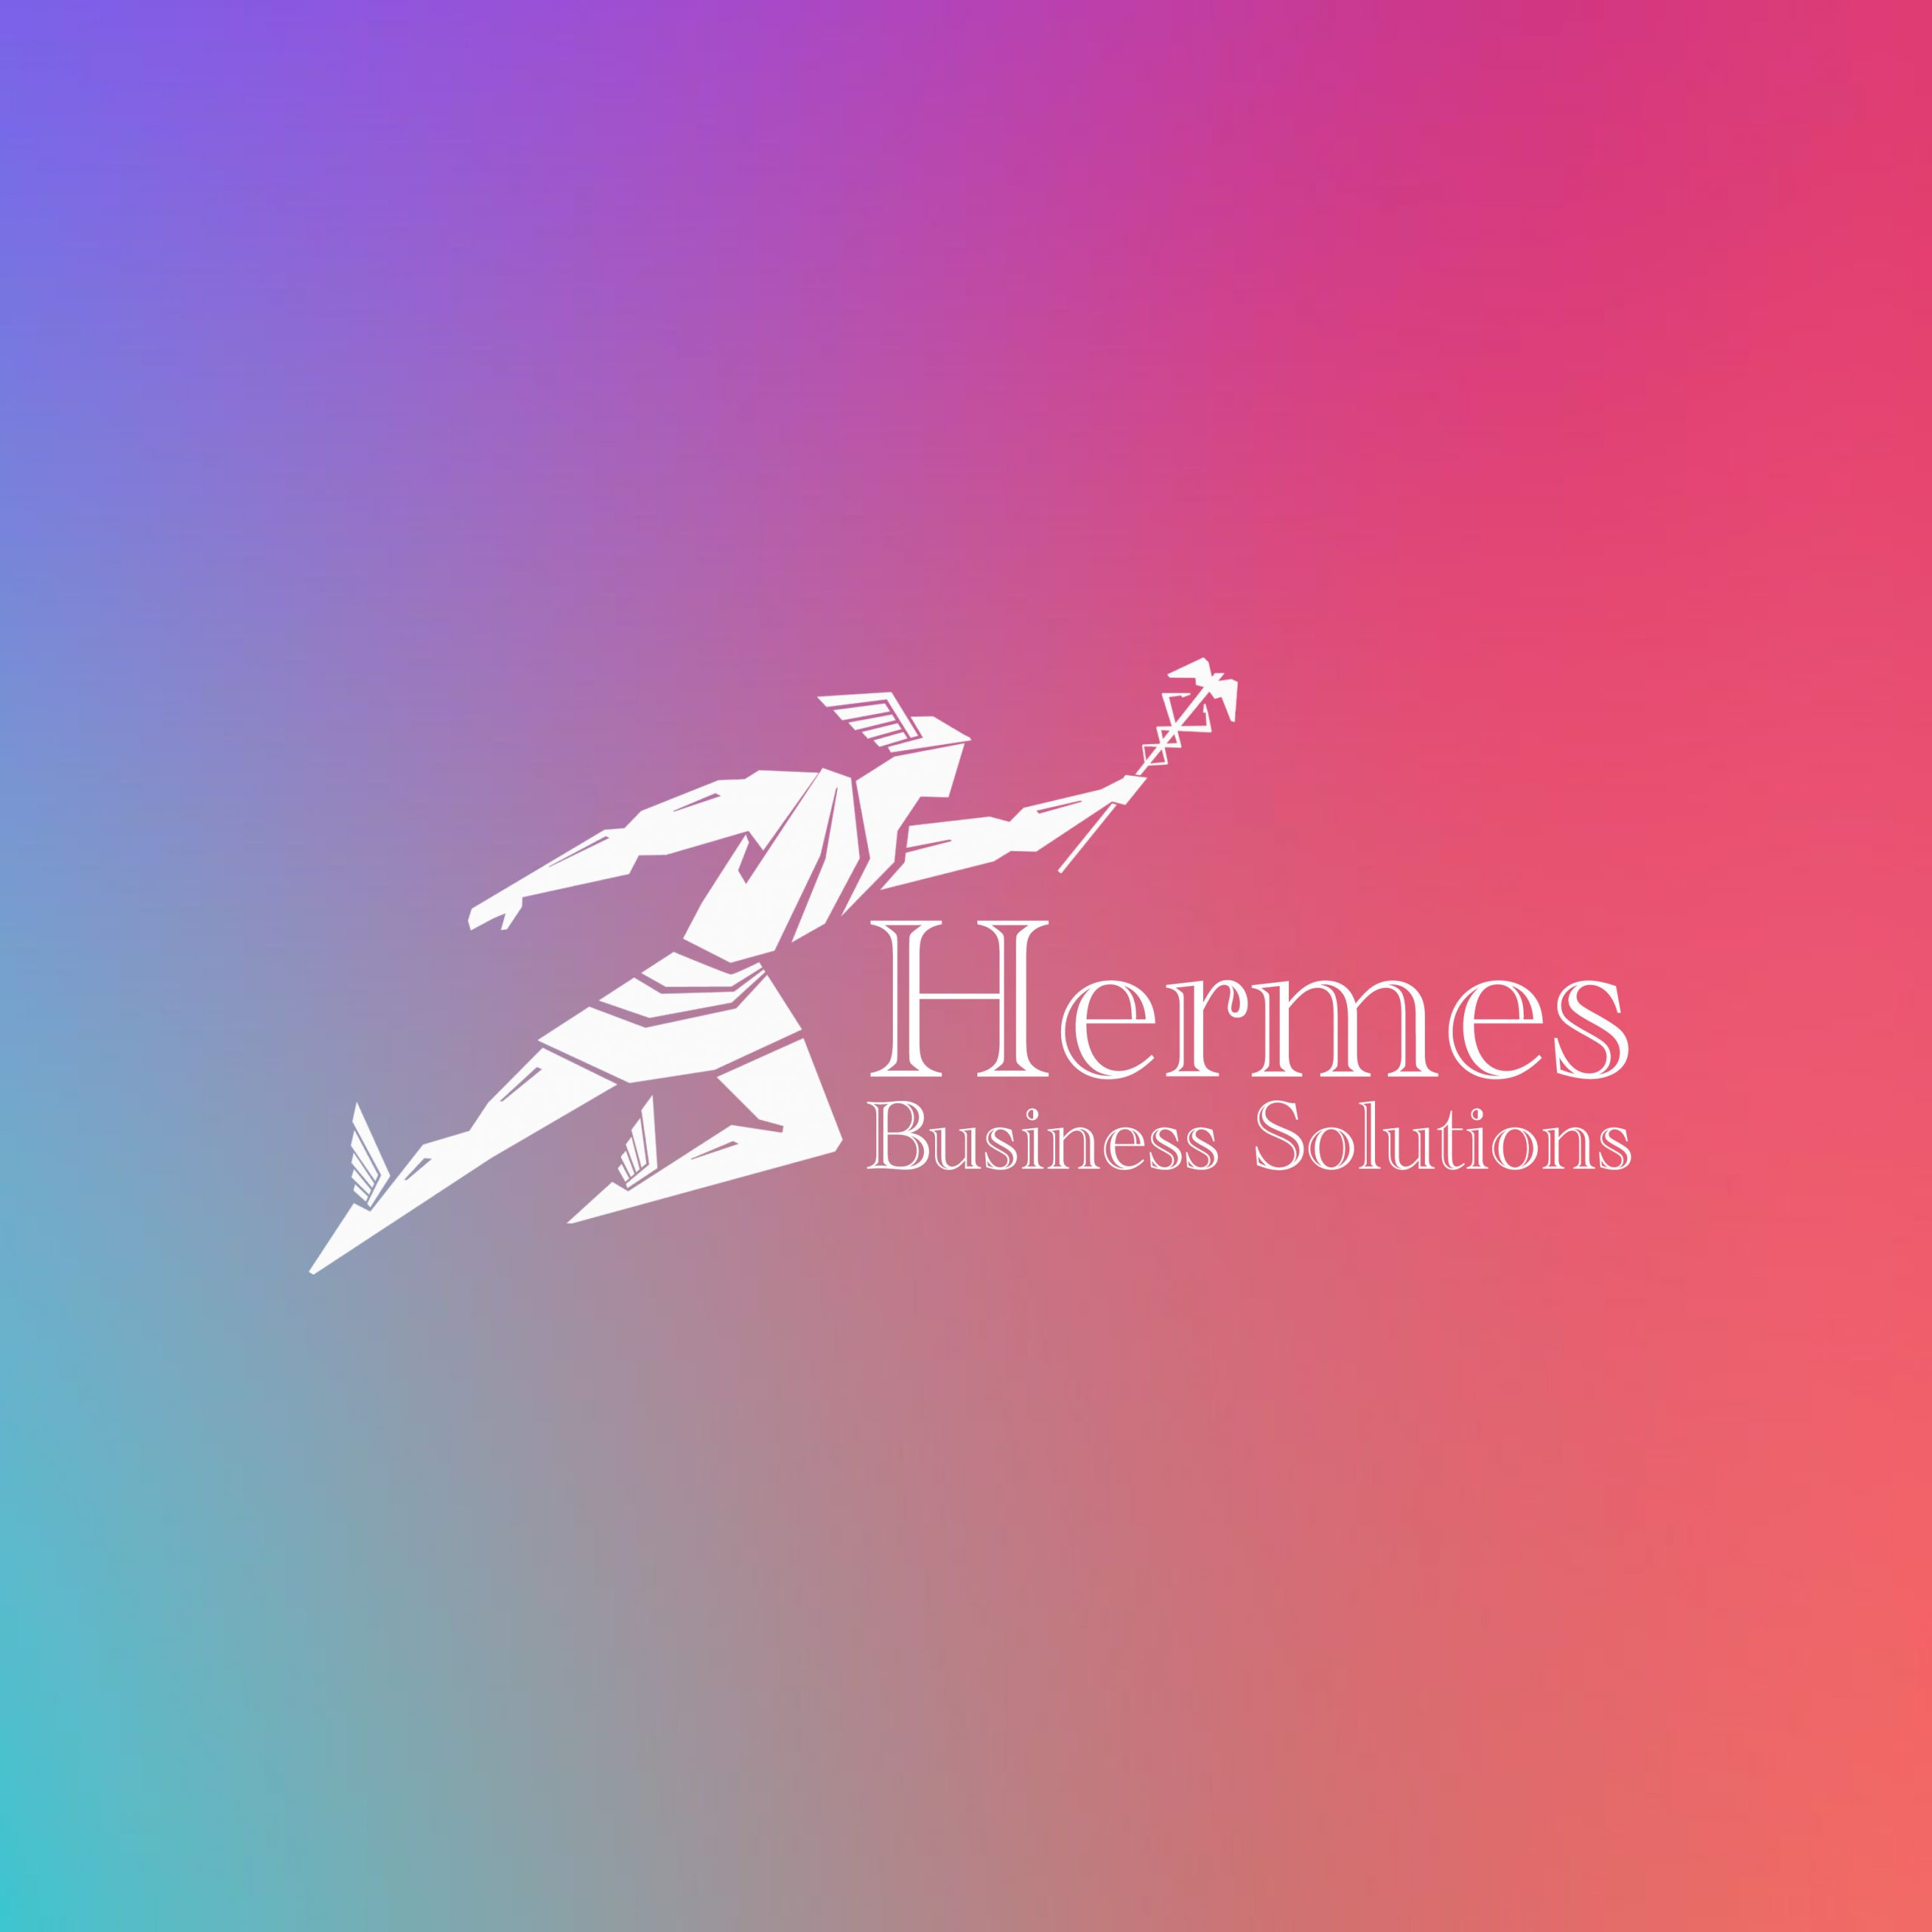 Hermes Business Solutions